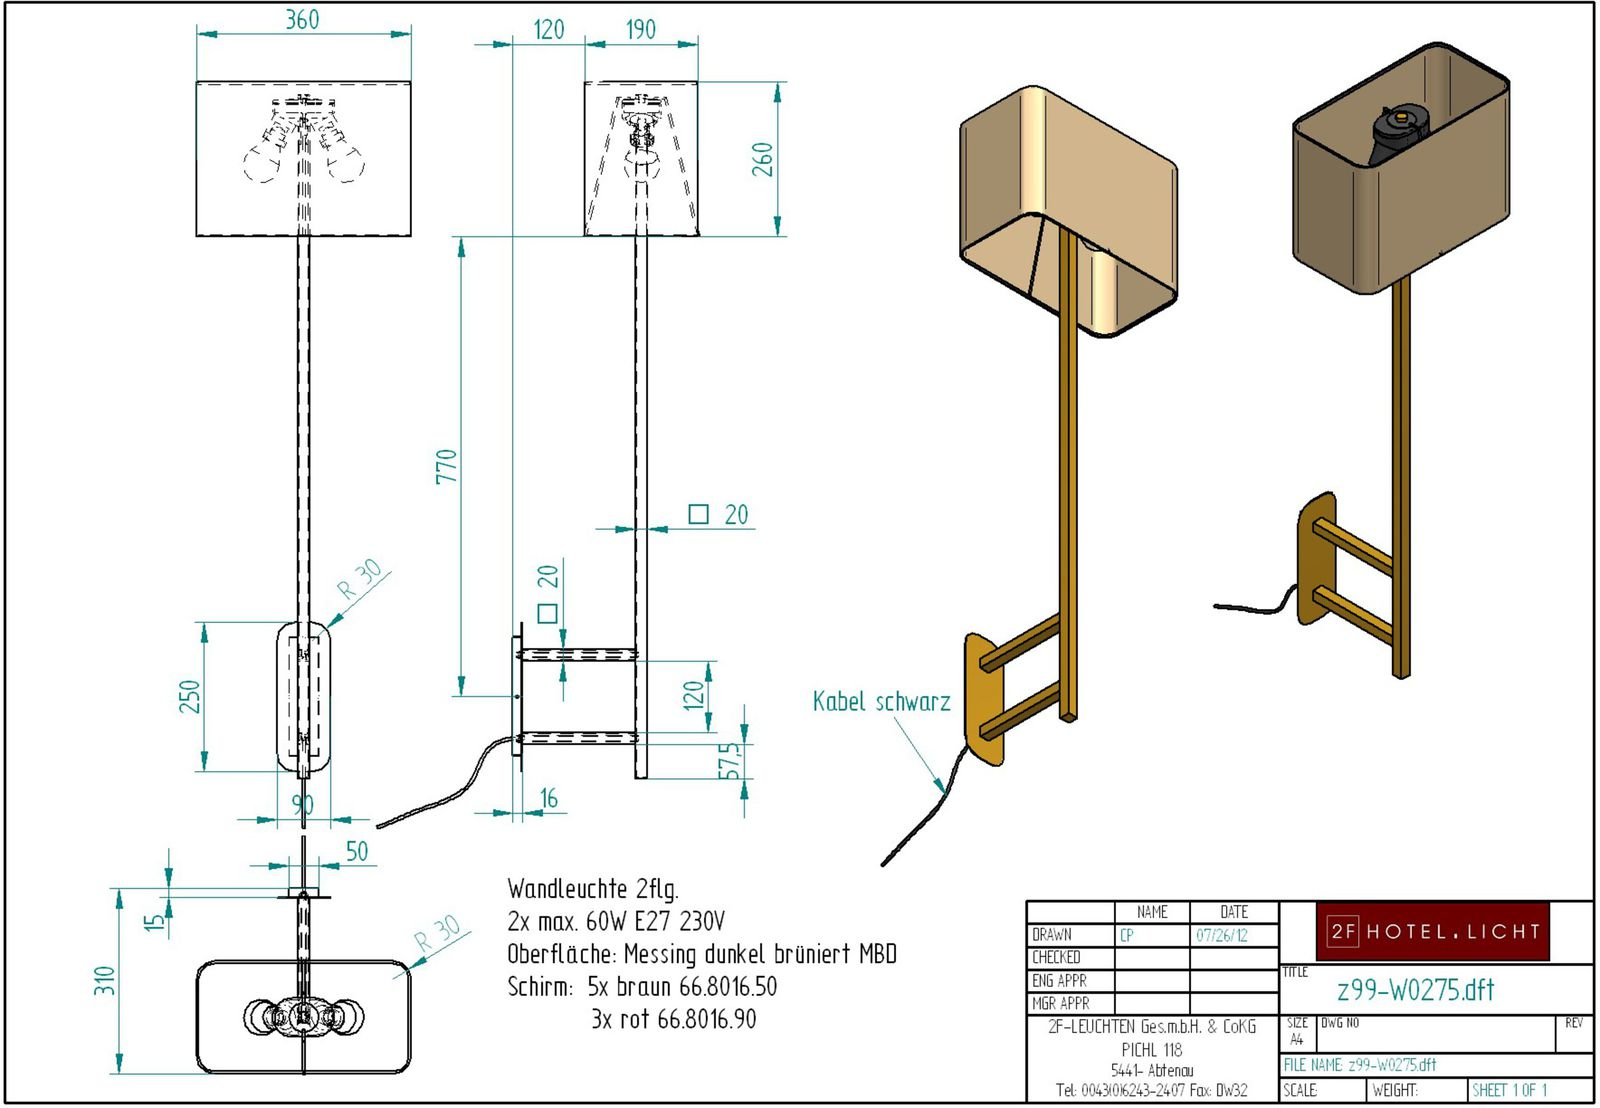 wall lamp 2 flg., height=750mm, wide=360mm, surface: bronzed brass, techn. details: 2xE27, 60W